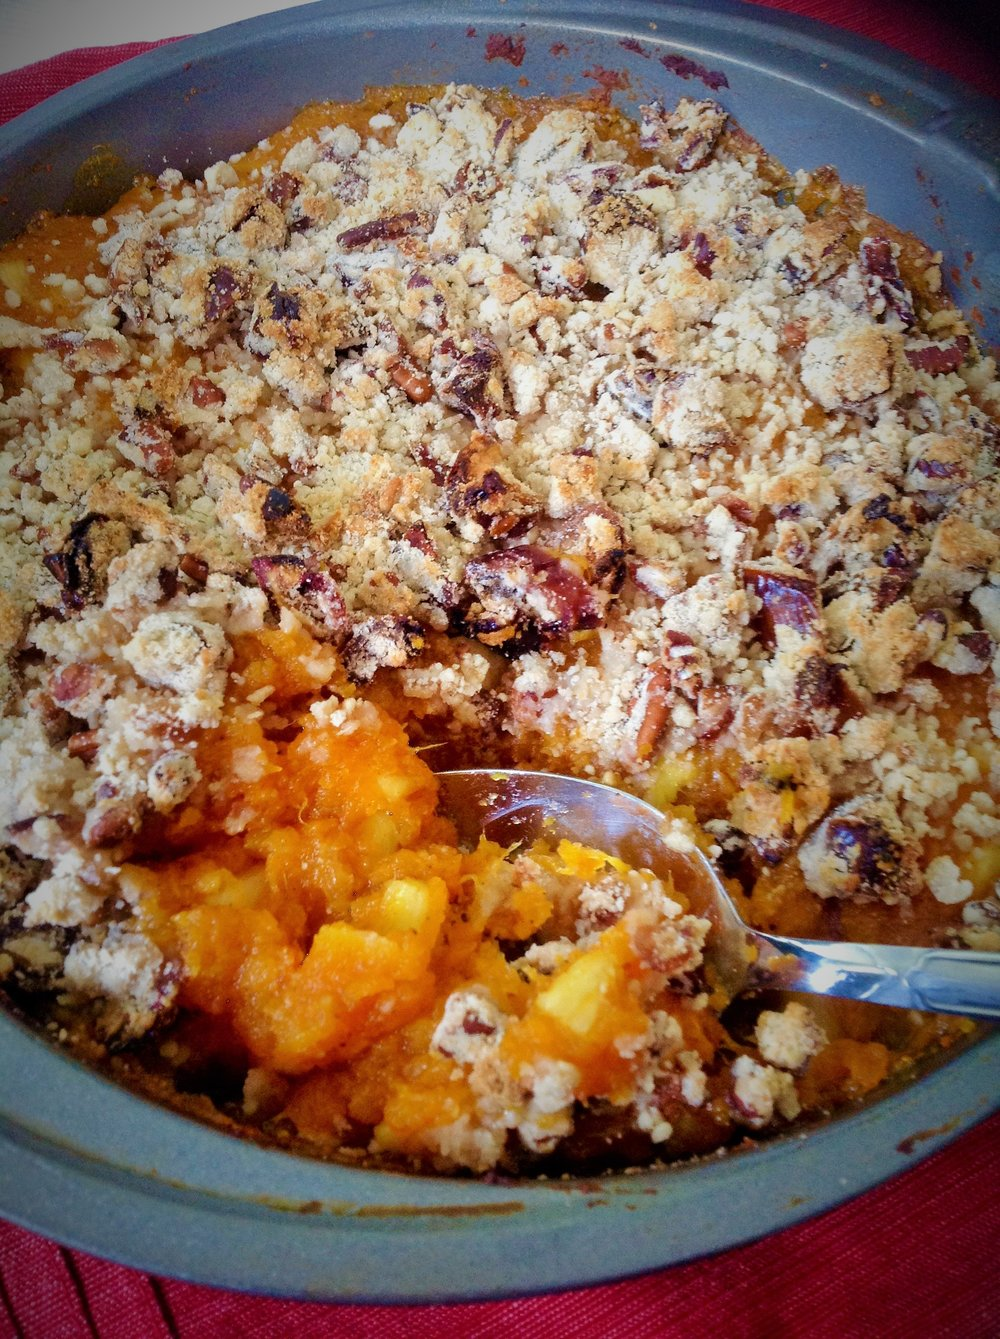 Sweet Potato Pineapple Casserole with Pecan Streussel - Healthy, Gluten-Free, No Sugar Added, Plant-Based, Vegan